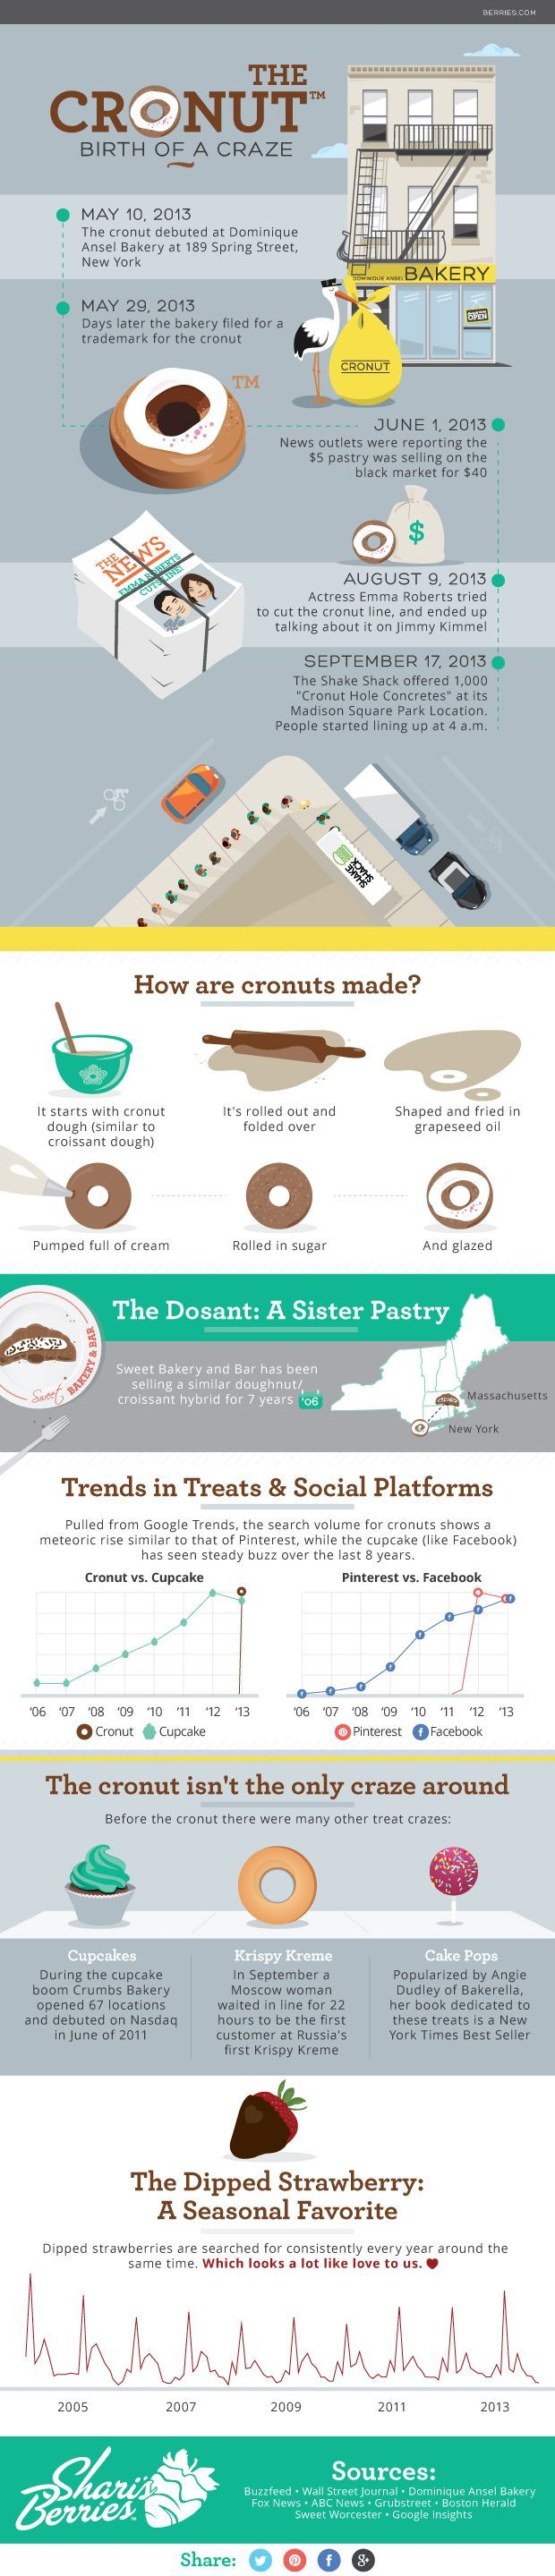 Awesome cronuts infographic!